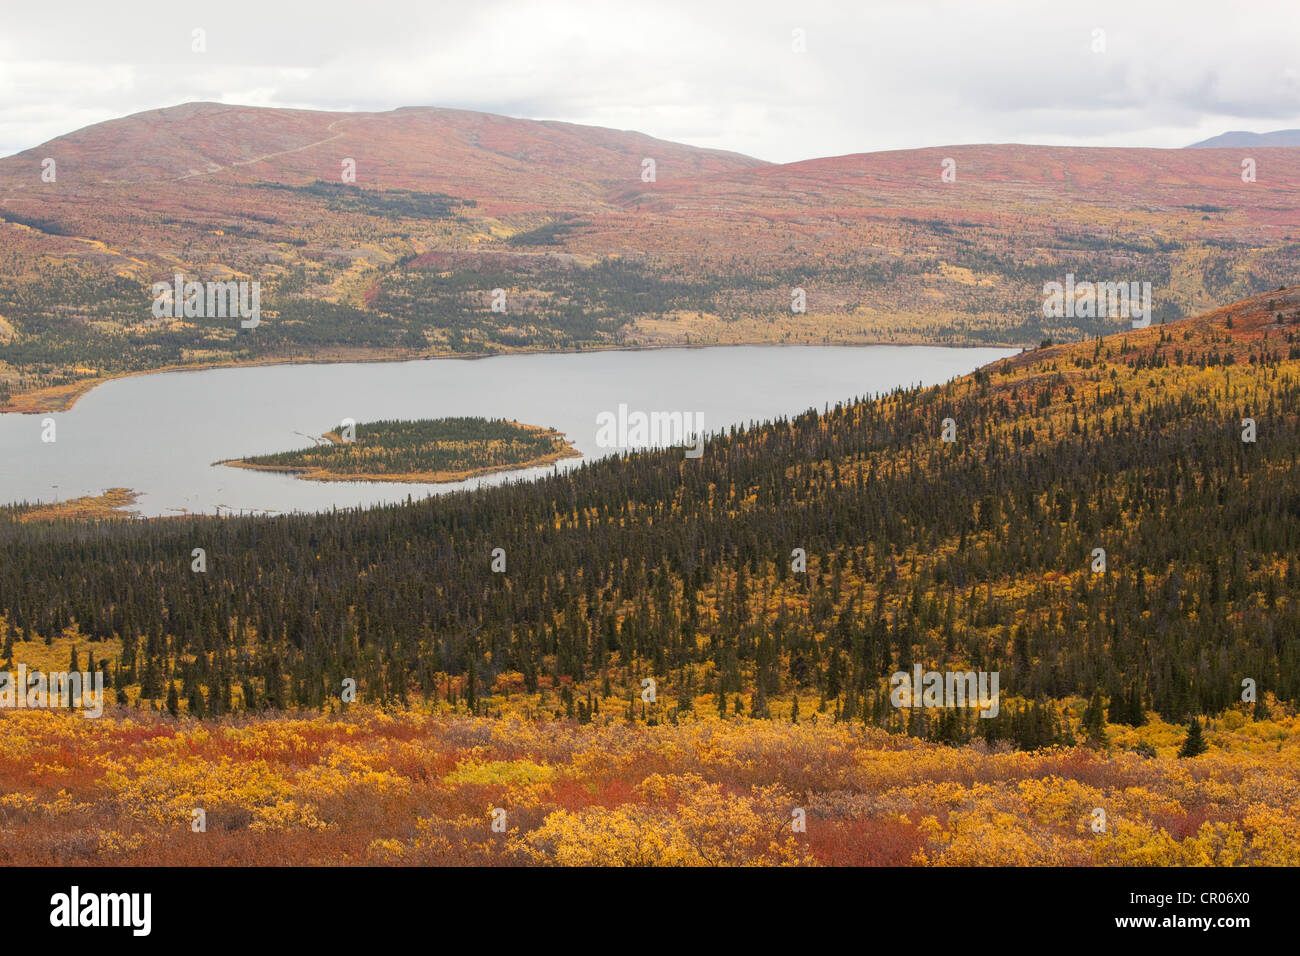 View, panorama over Fish Lake and surrounding sub-alpine tundra, Indian summer, leaves in fall colours, autumn, - Stock Image